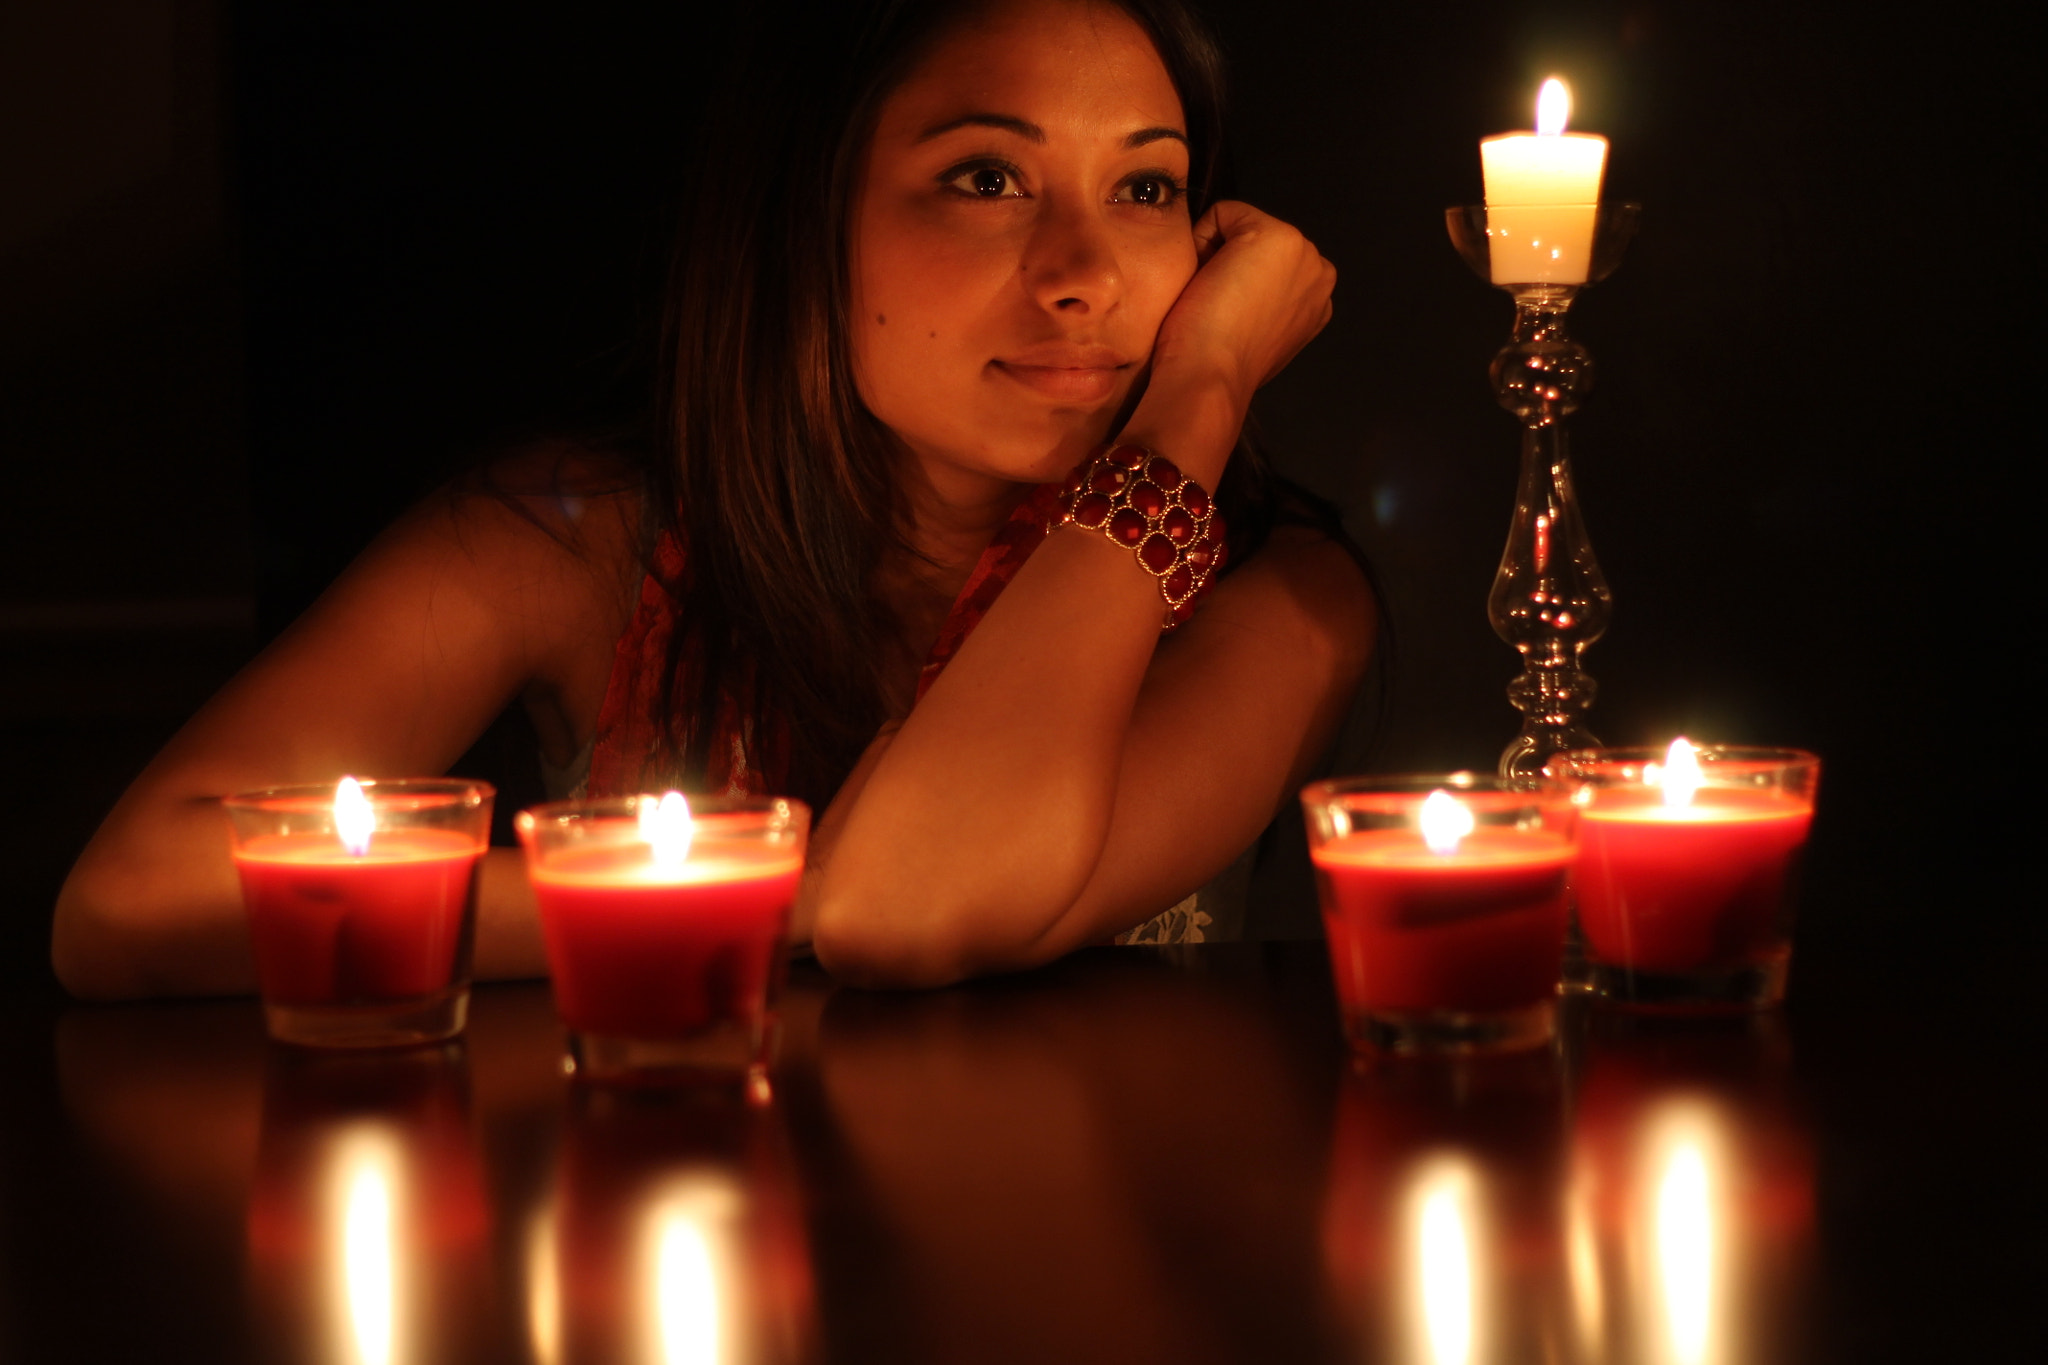 Photograph By candle light by Prashanth Nyer on 500px